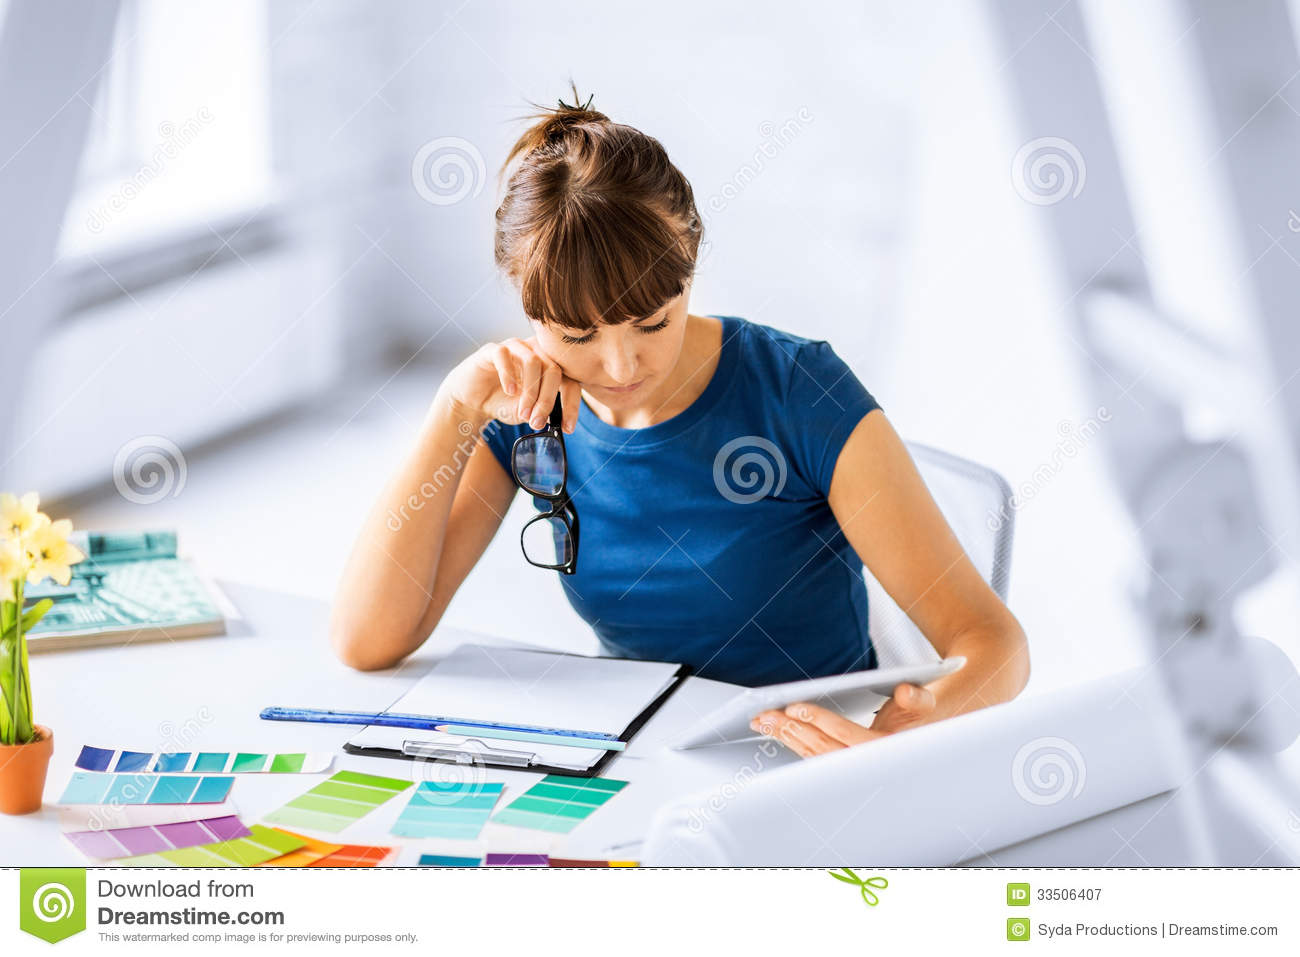 Designers Also Selected These Stock Photos